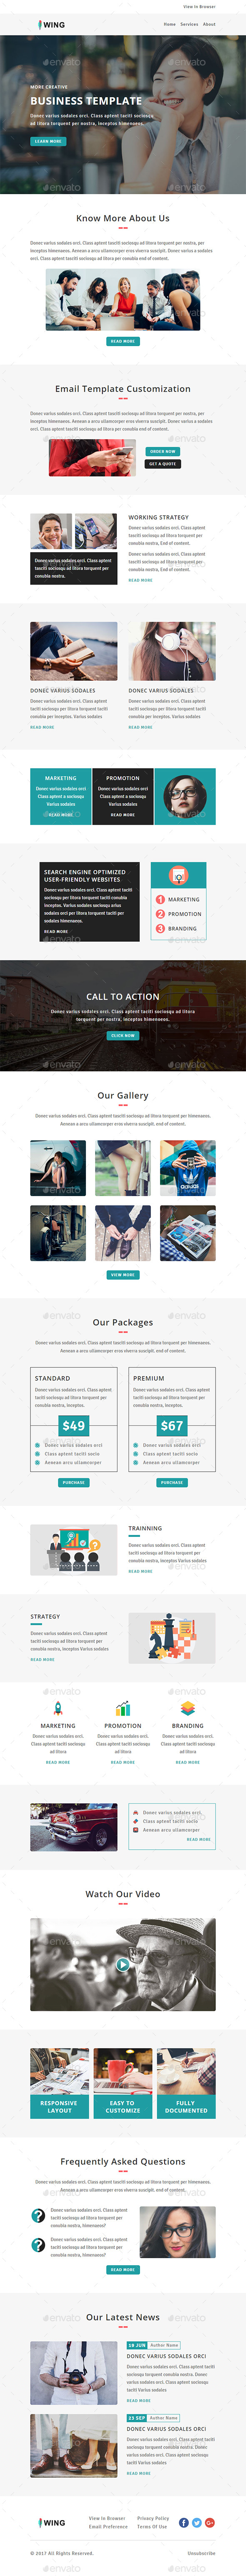 Wing - E-newsletter PSD Template - E-newsletters Web Elements